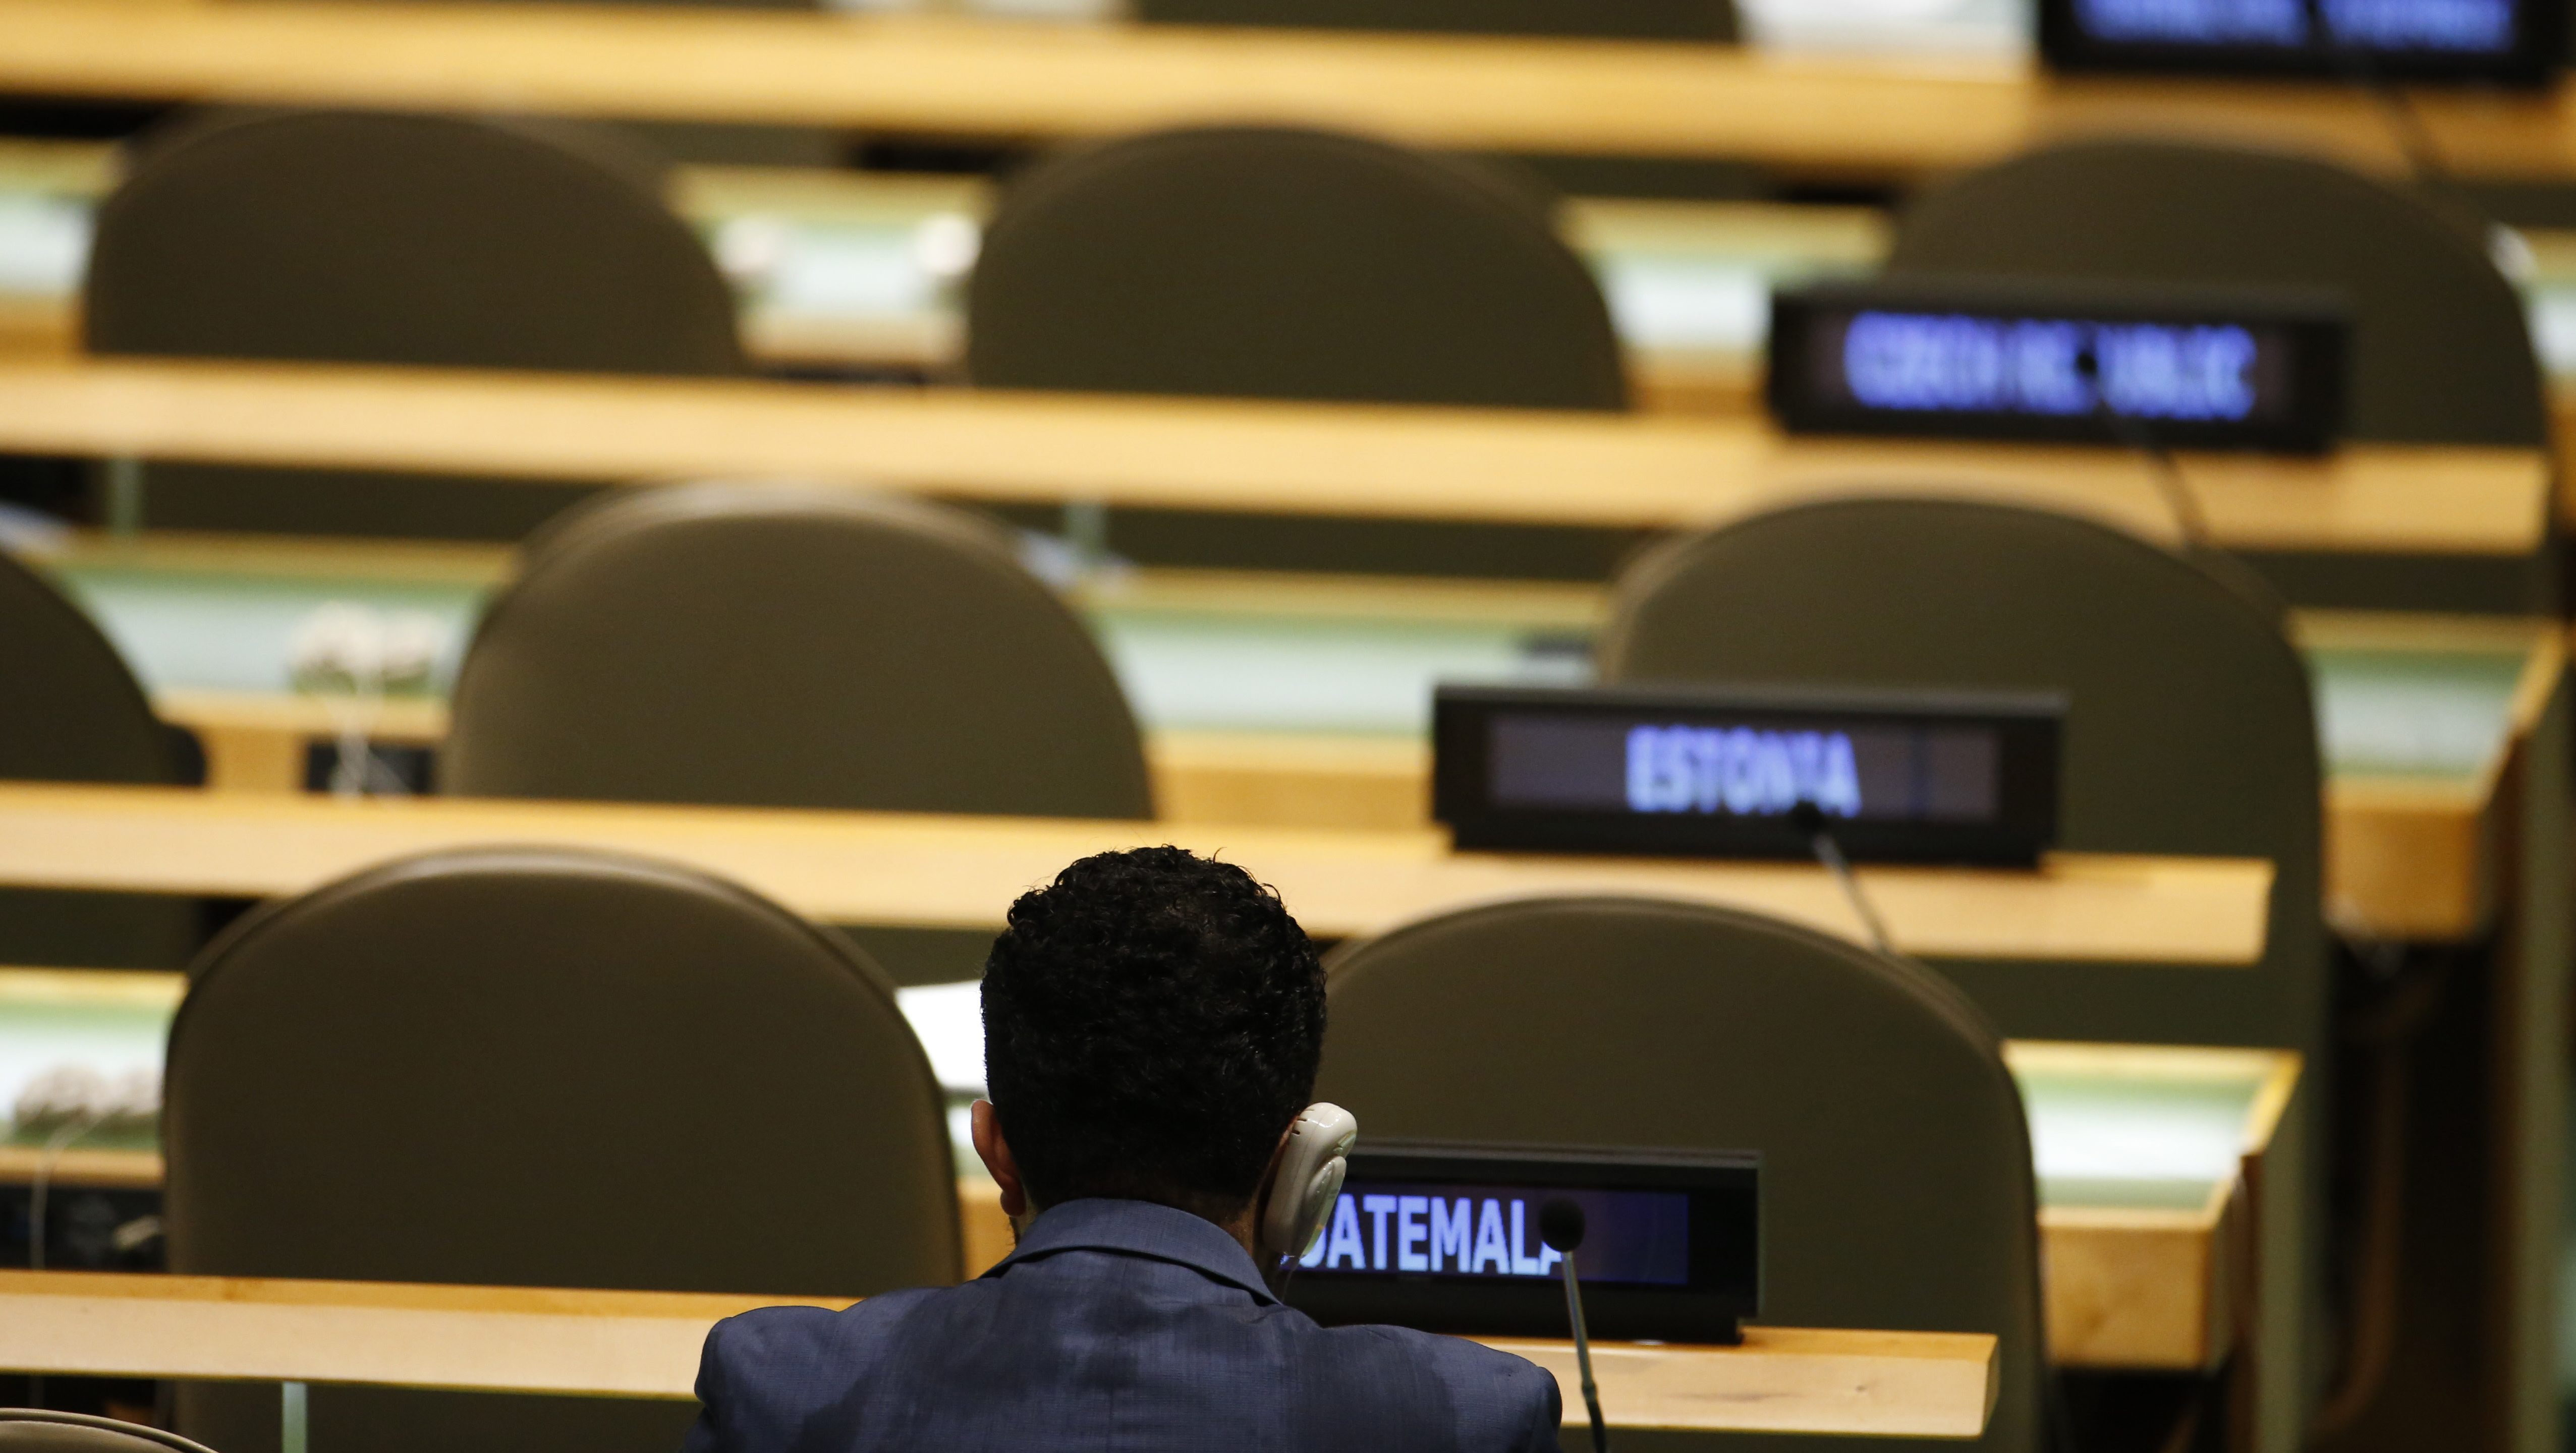 An almost empty General Assembly Hall is seen as President Rosen Plevneliev of Bulgaria addresses attendees during the 70th session of the United Nations General Assembly at the U.N. headquarters in New York, September 30, 2015.